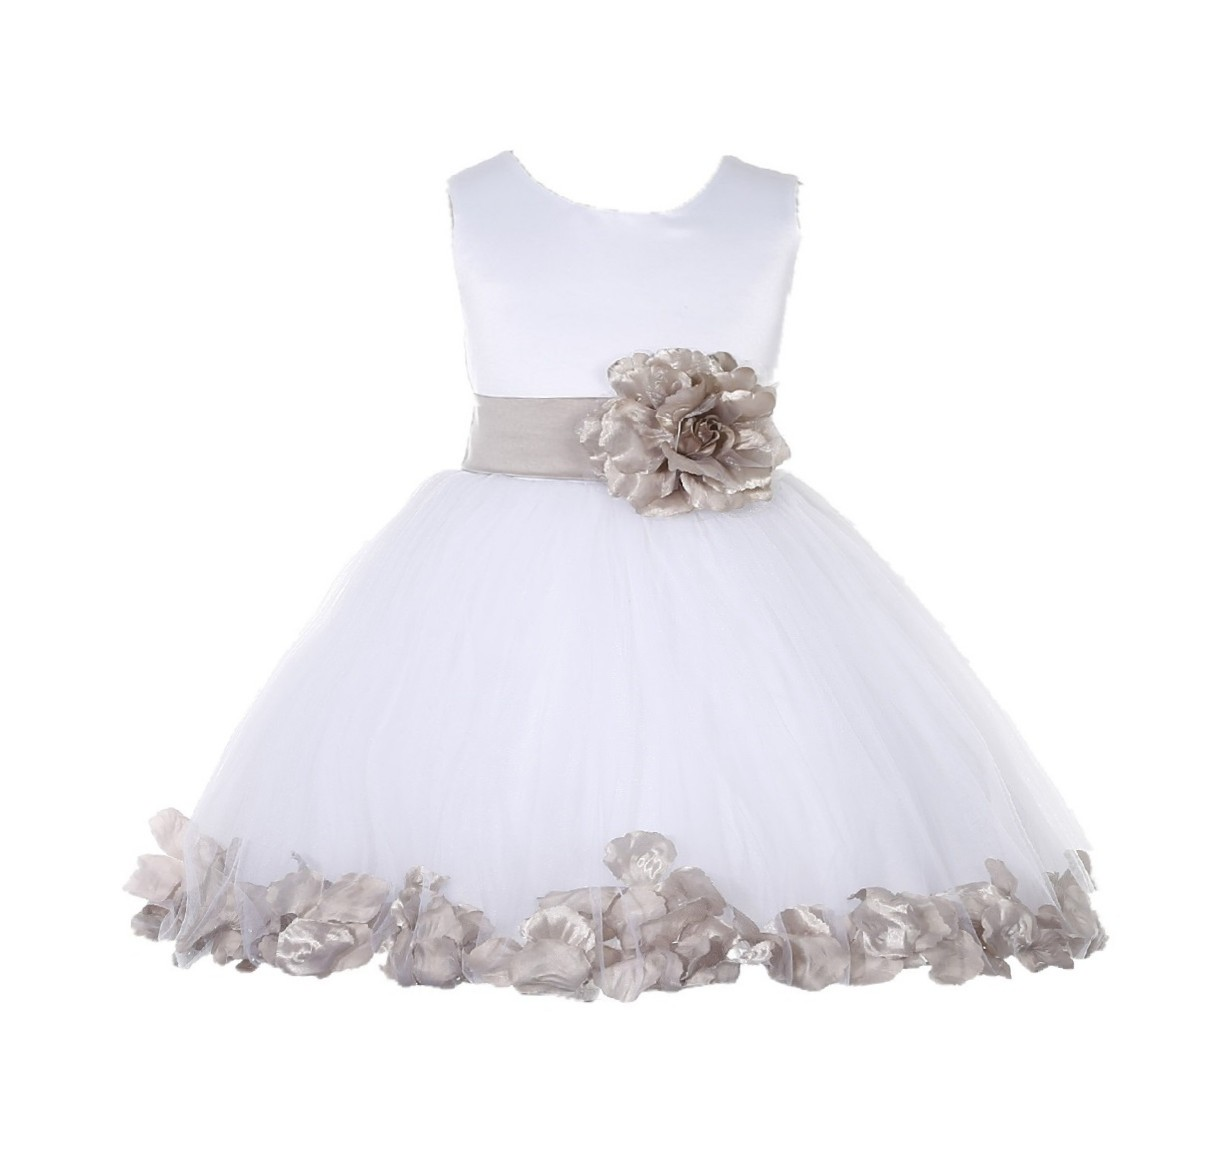 White/ Biscotti Rose Petals Tulle Flower Girl Dress Wedding 305T